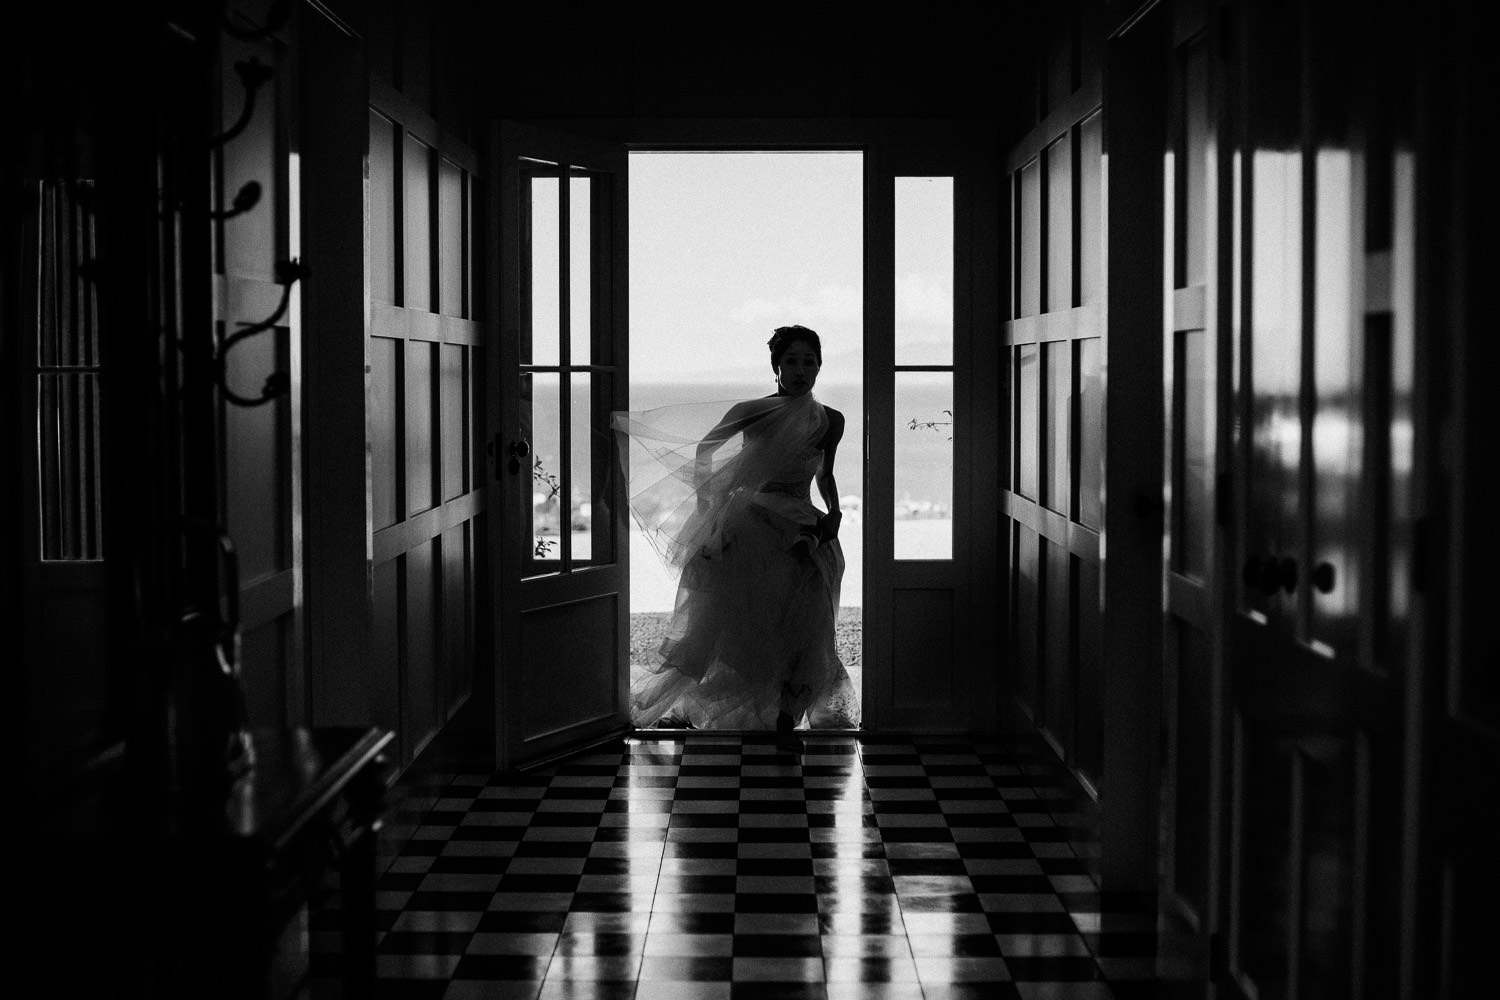 New Zealand destination wedding photography and videography